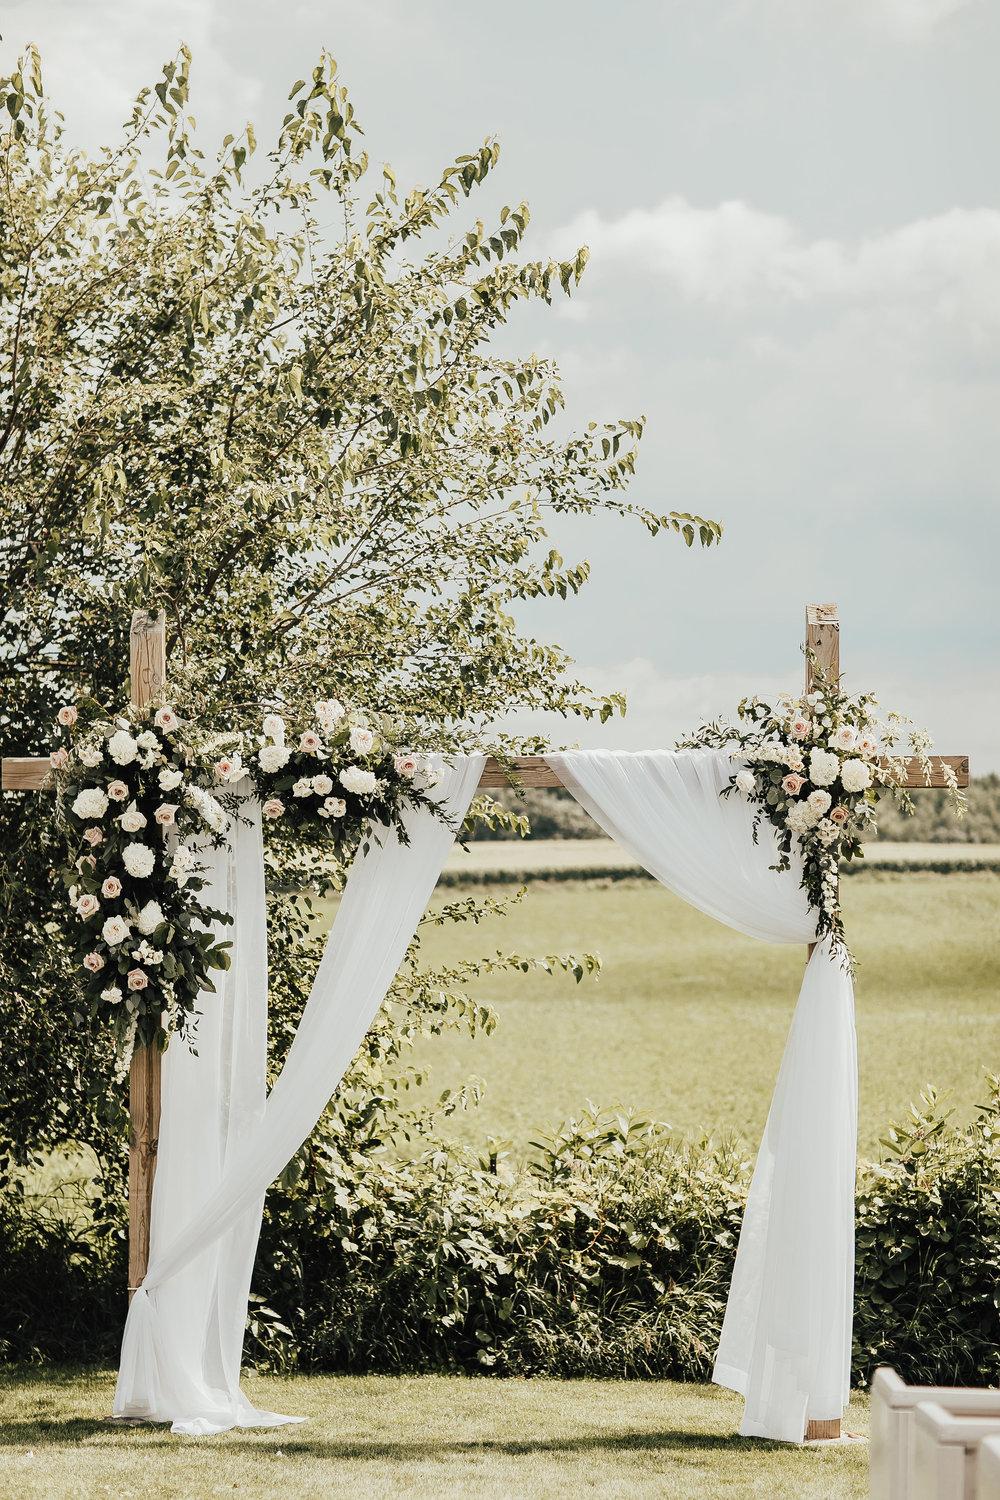 Summer wedding with draping on the ceremony arch and flower arrangements attached